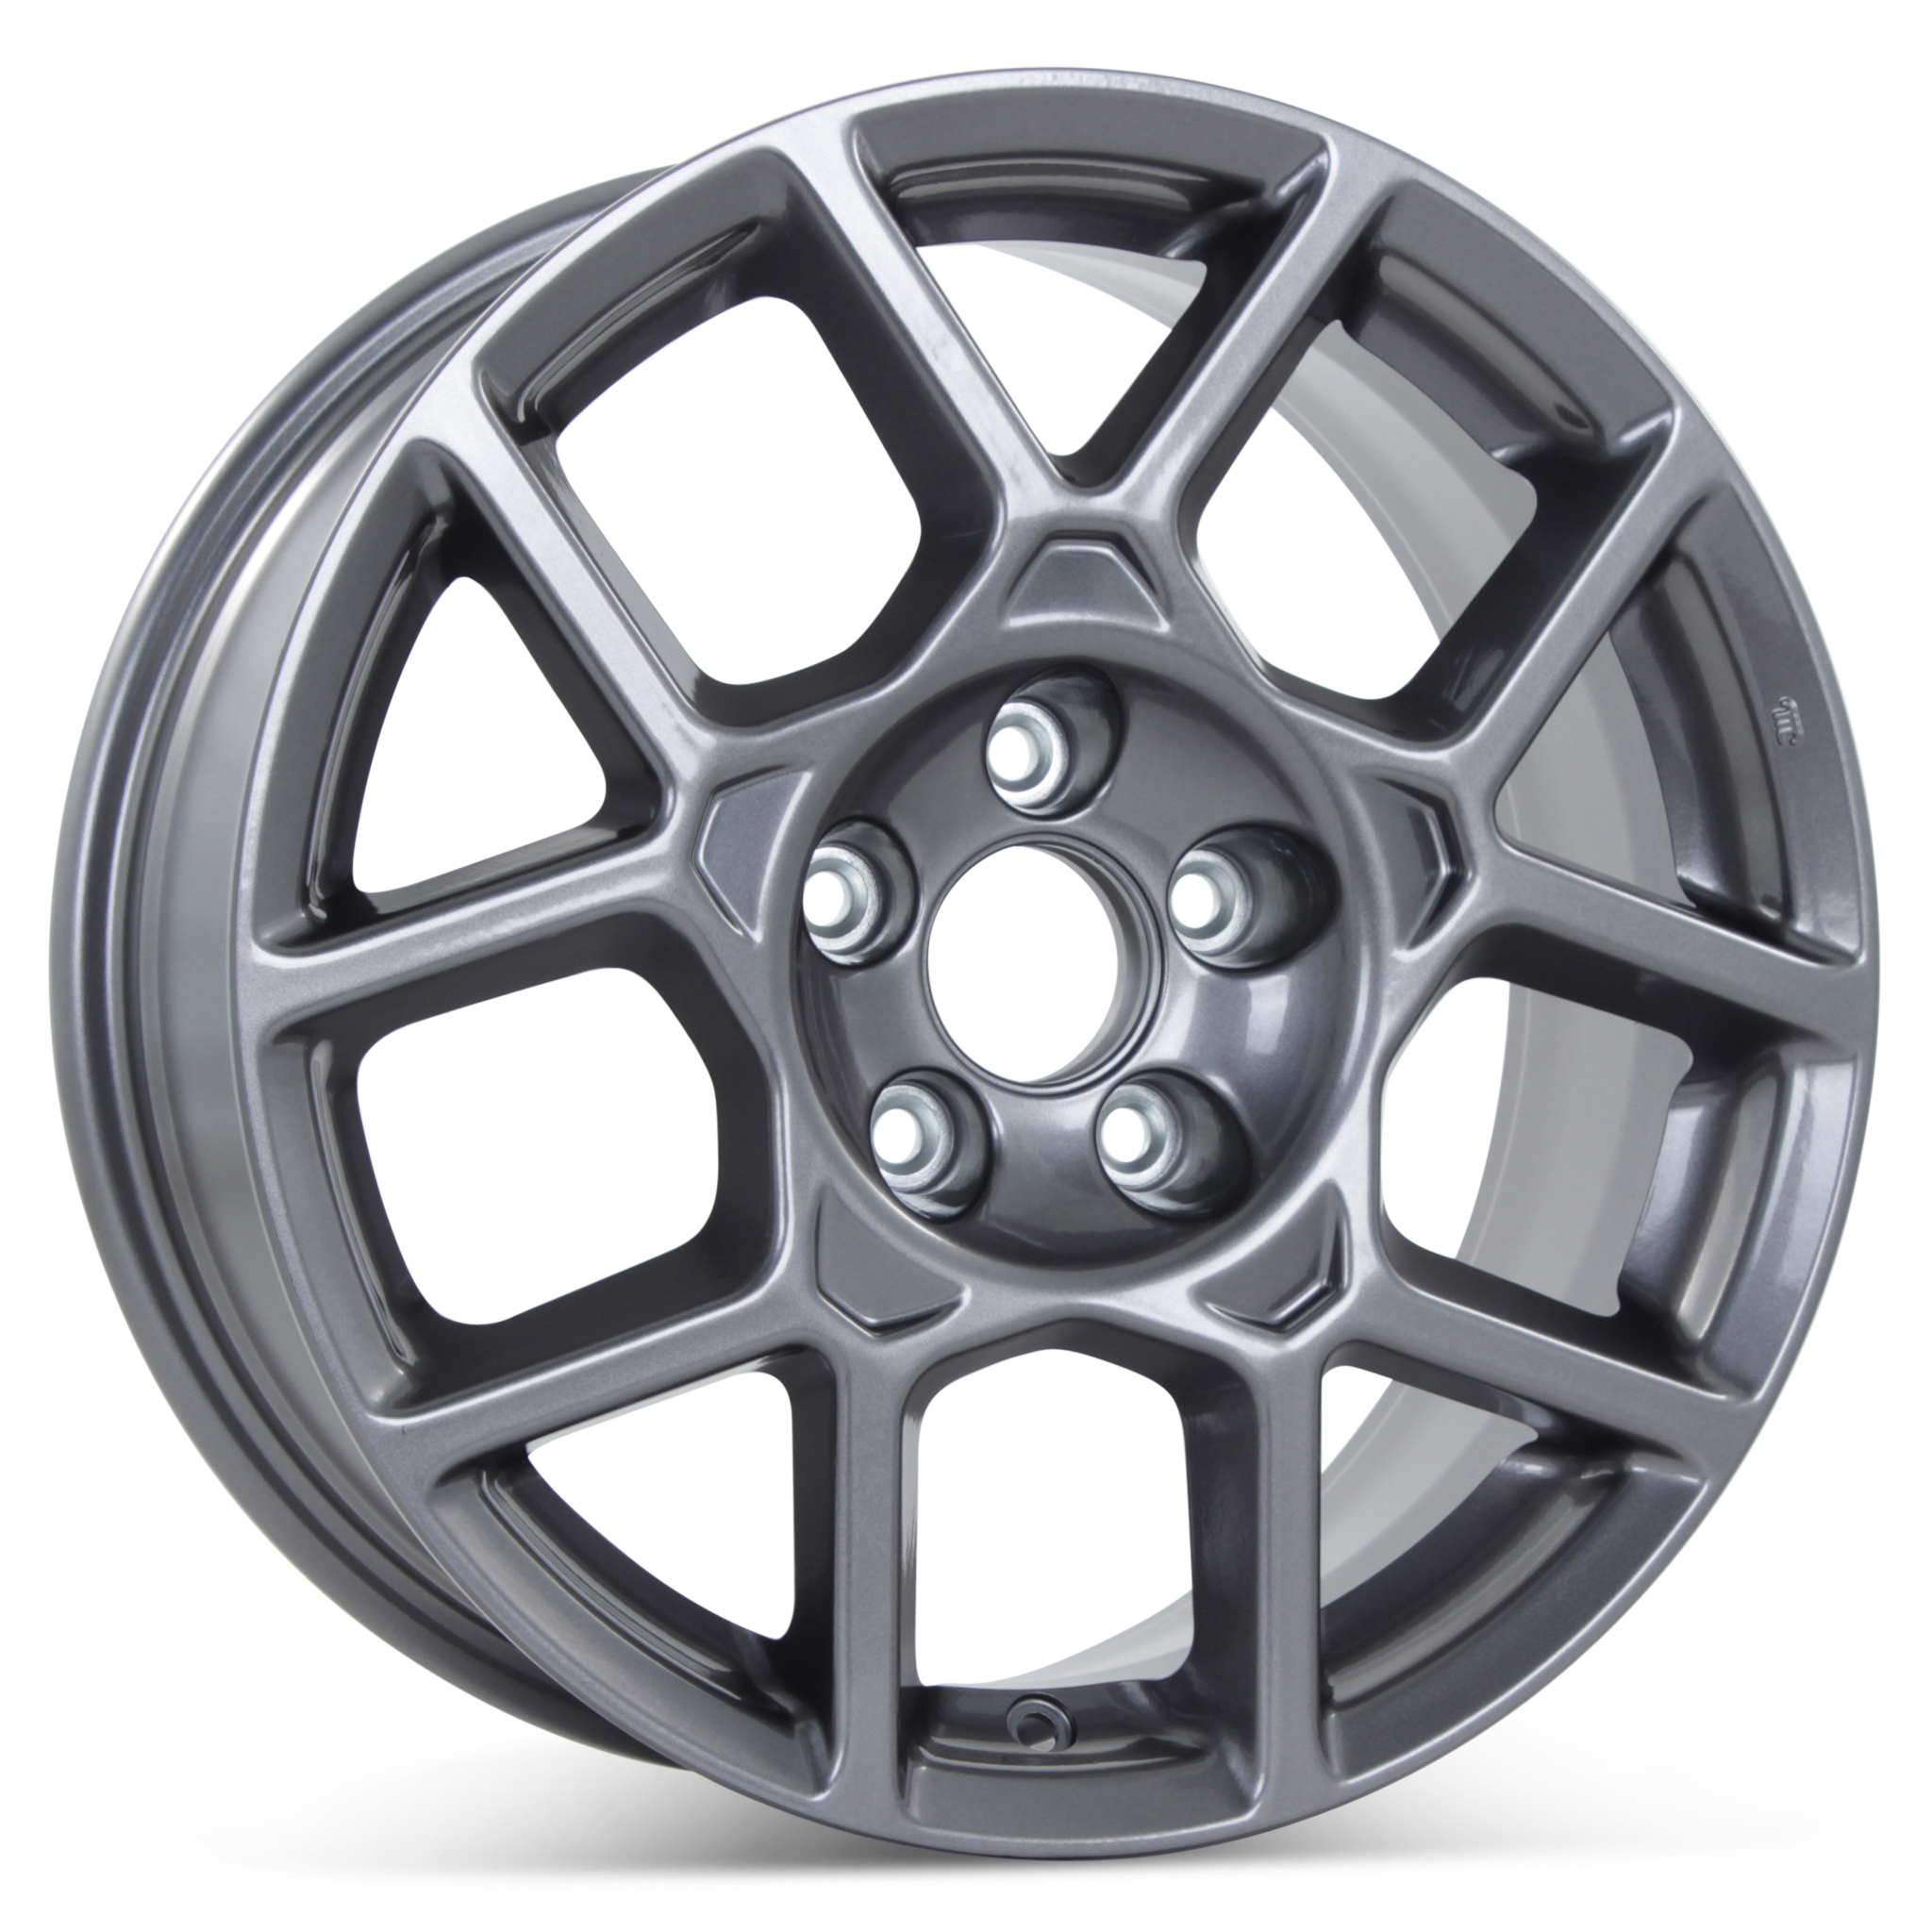 "New 17"" X 8"" Alloy Replacement Wheel For Acura TL Type S"